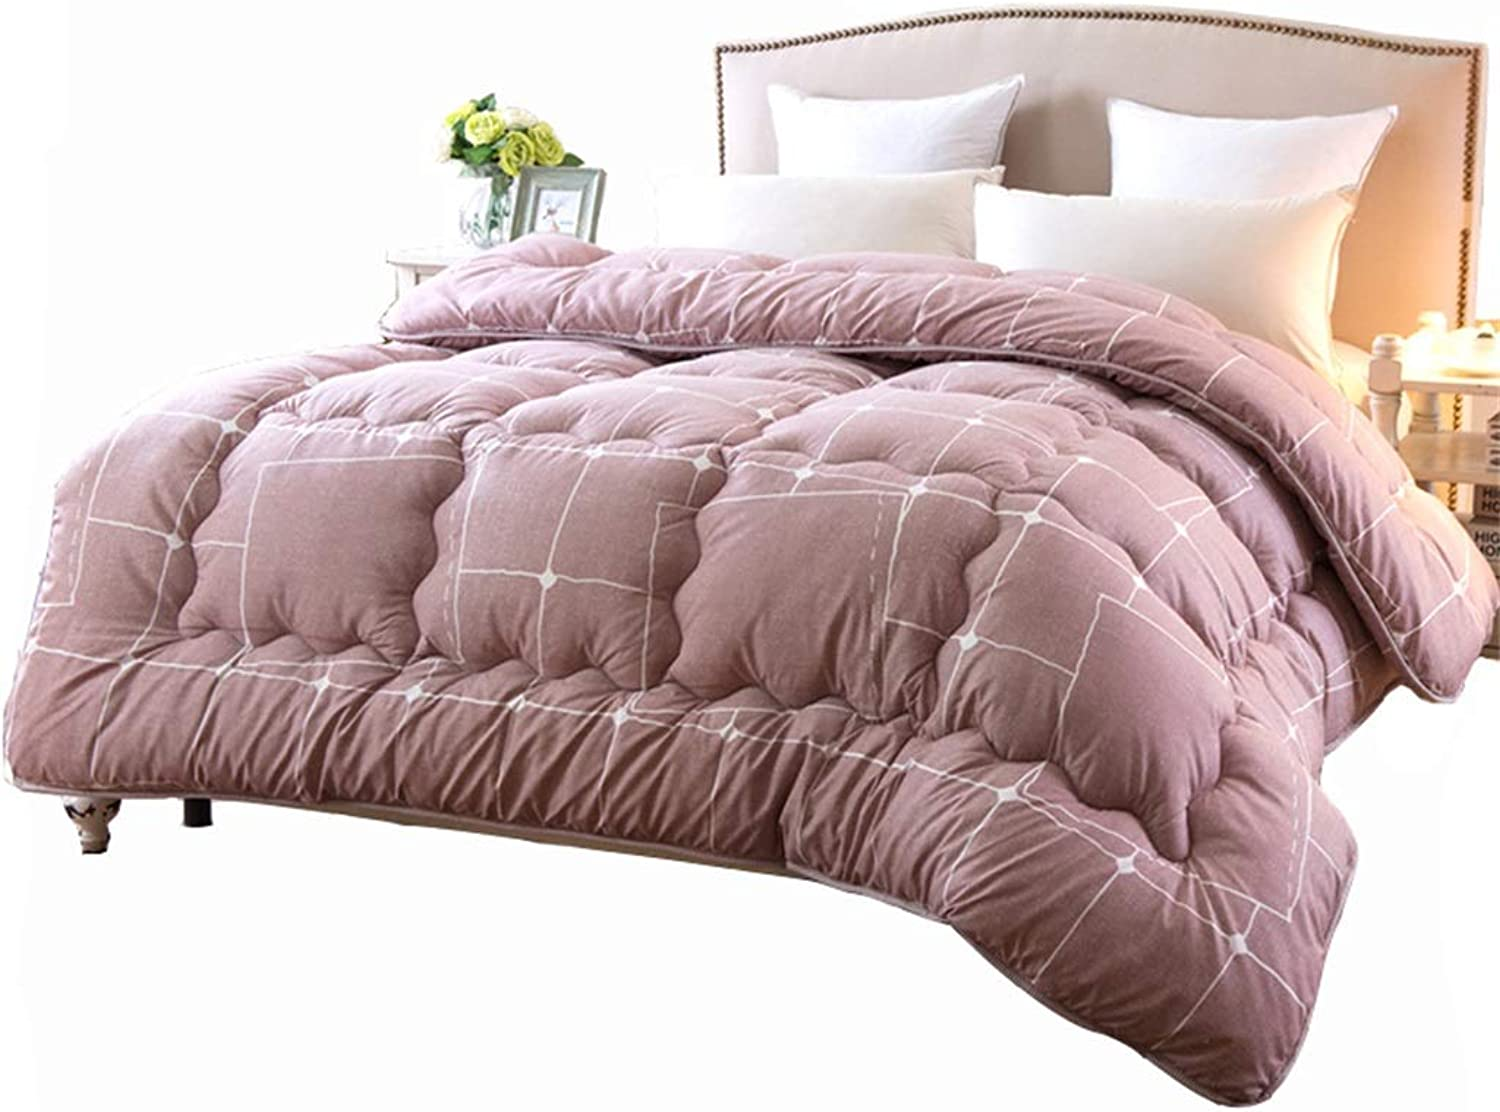 Warm Quilt Quilted Duvet Spring Autumn   Winter Thicked Warm Single Double Bed Pink Bedding - Family Student Dormitory Comforter - Polyester Fabric Fashion Fluffy Quilt Antiallergic Quilt